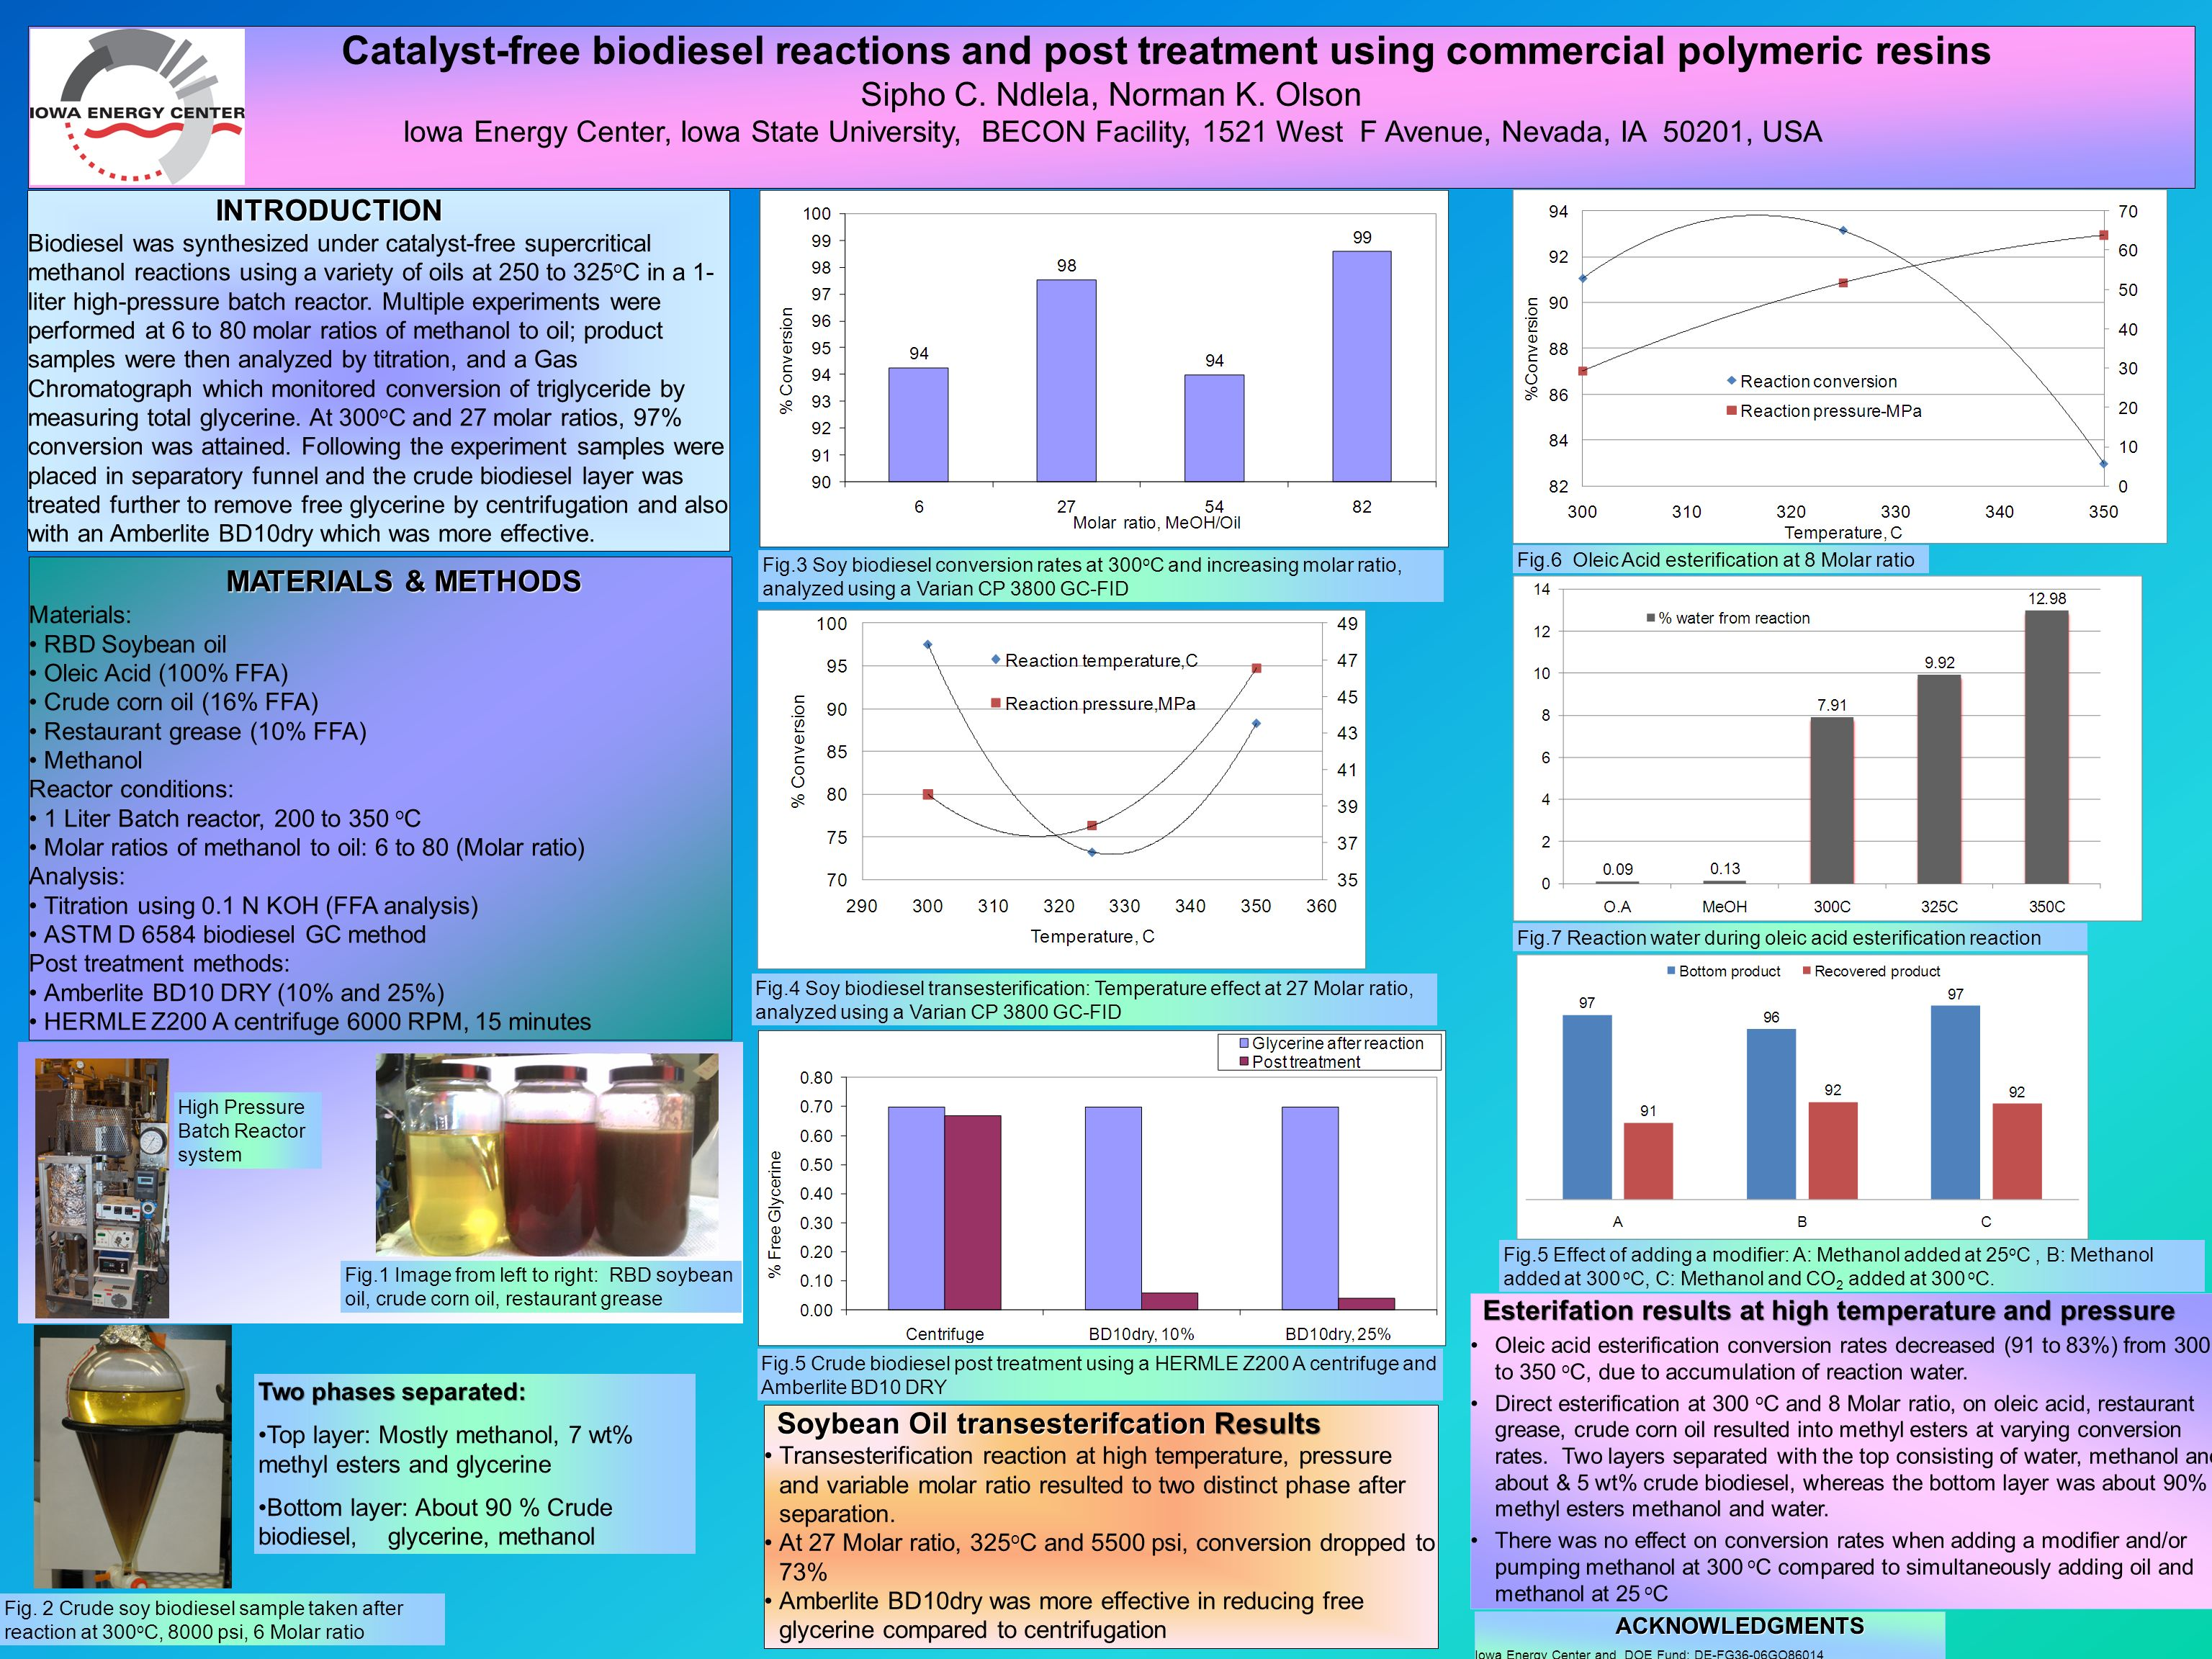 INTRODUCTION INTRODUCTION Biodiesel was synthesized under catalyst-free supercritical methanol reactions using a variety of oils at 250 to 325 o C in a 1- liter high-pressure batch reactor.